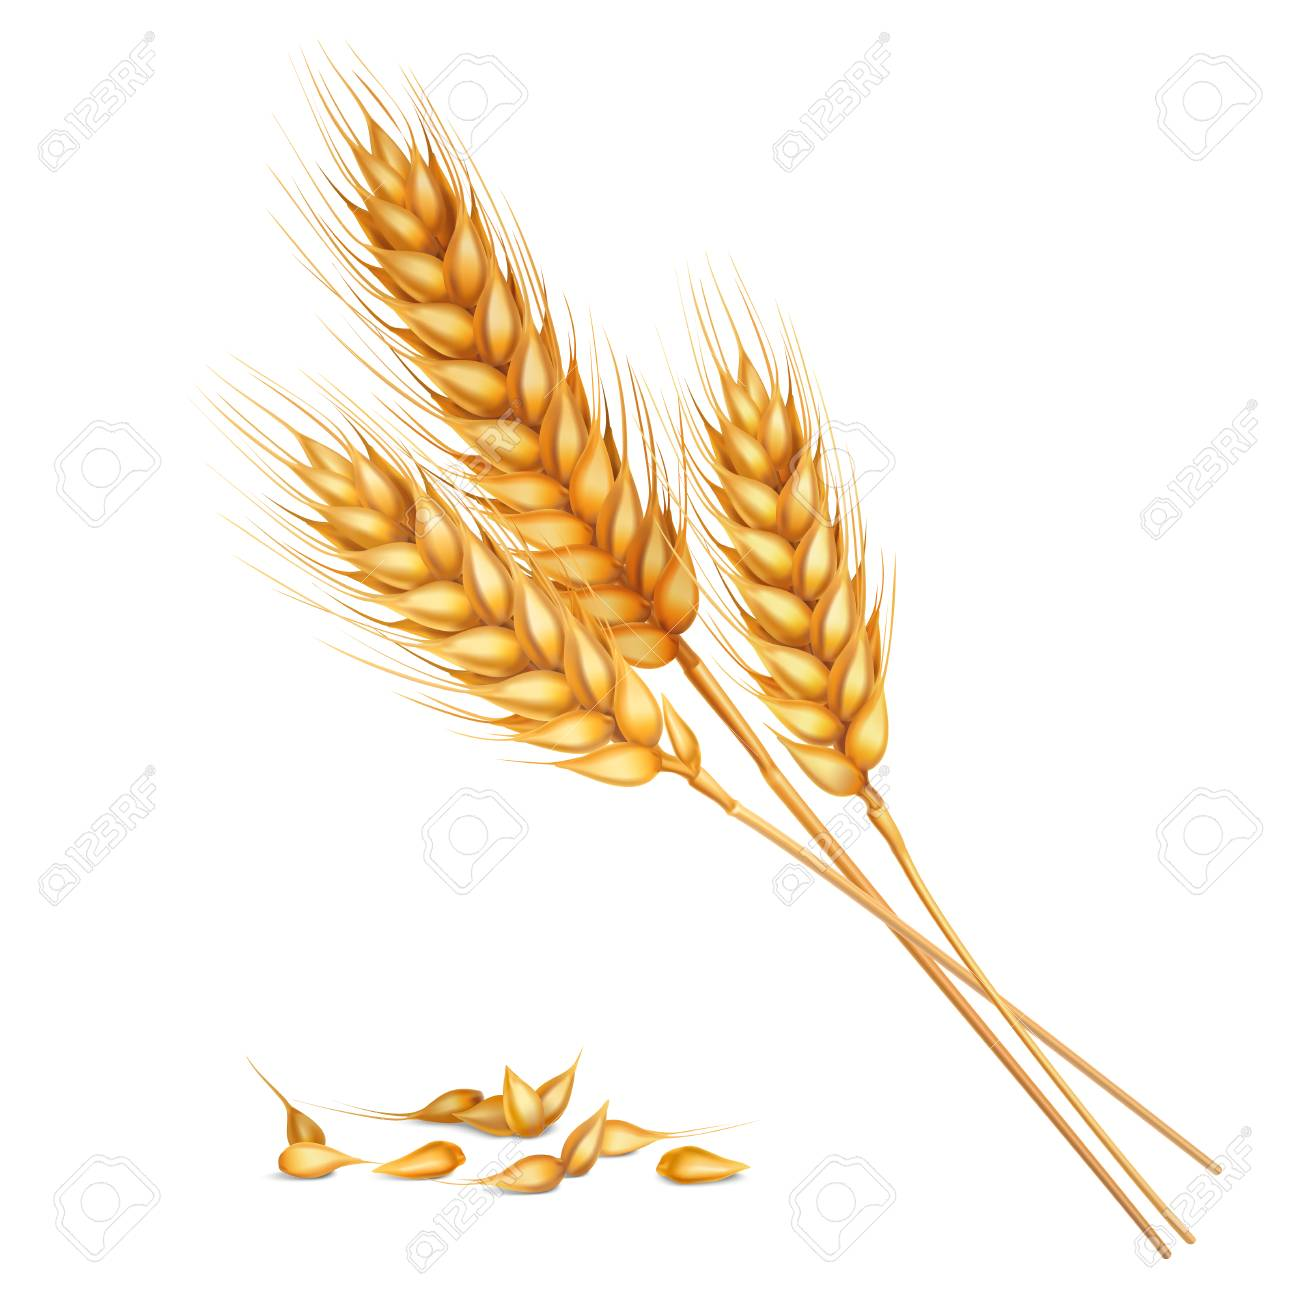 Realistic yellow ripe spikelets and grains of wheat composition on white background 3d vector illustration - 92712546